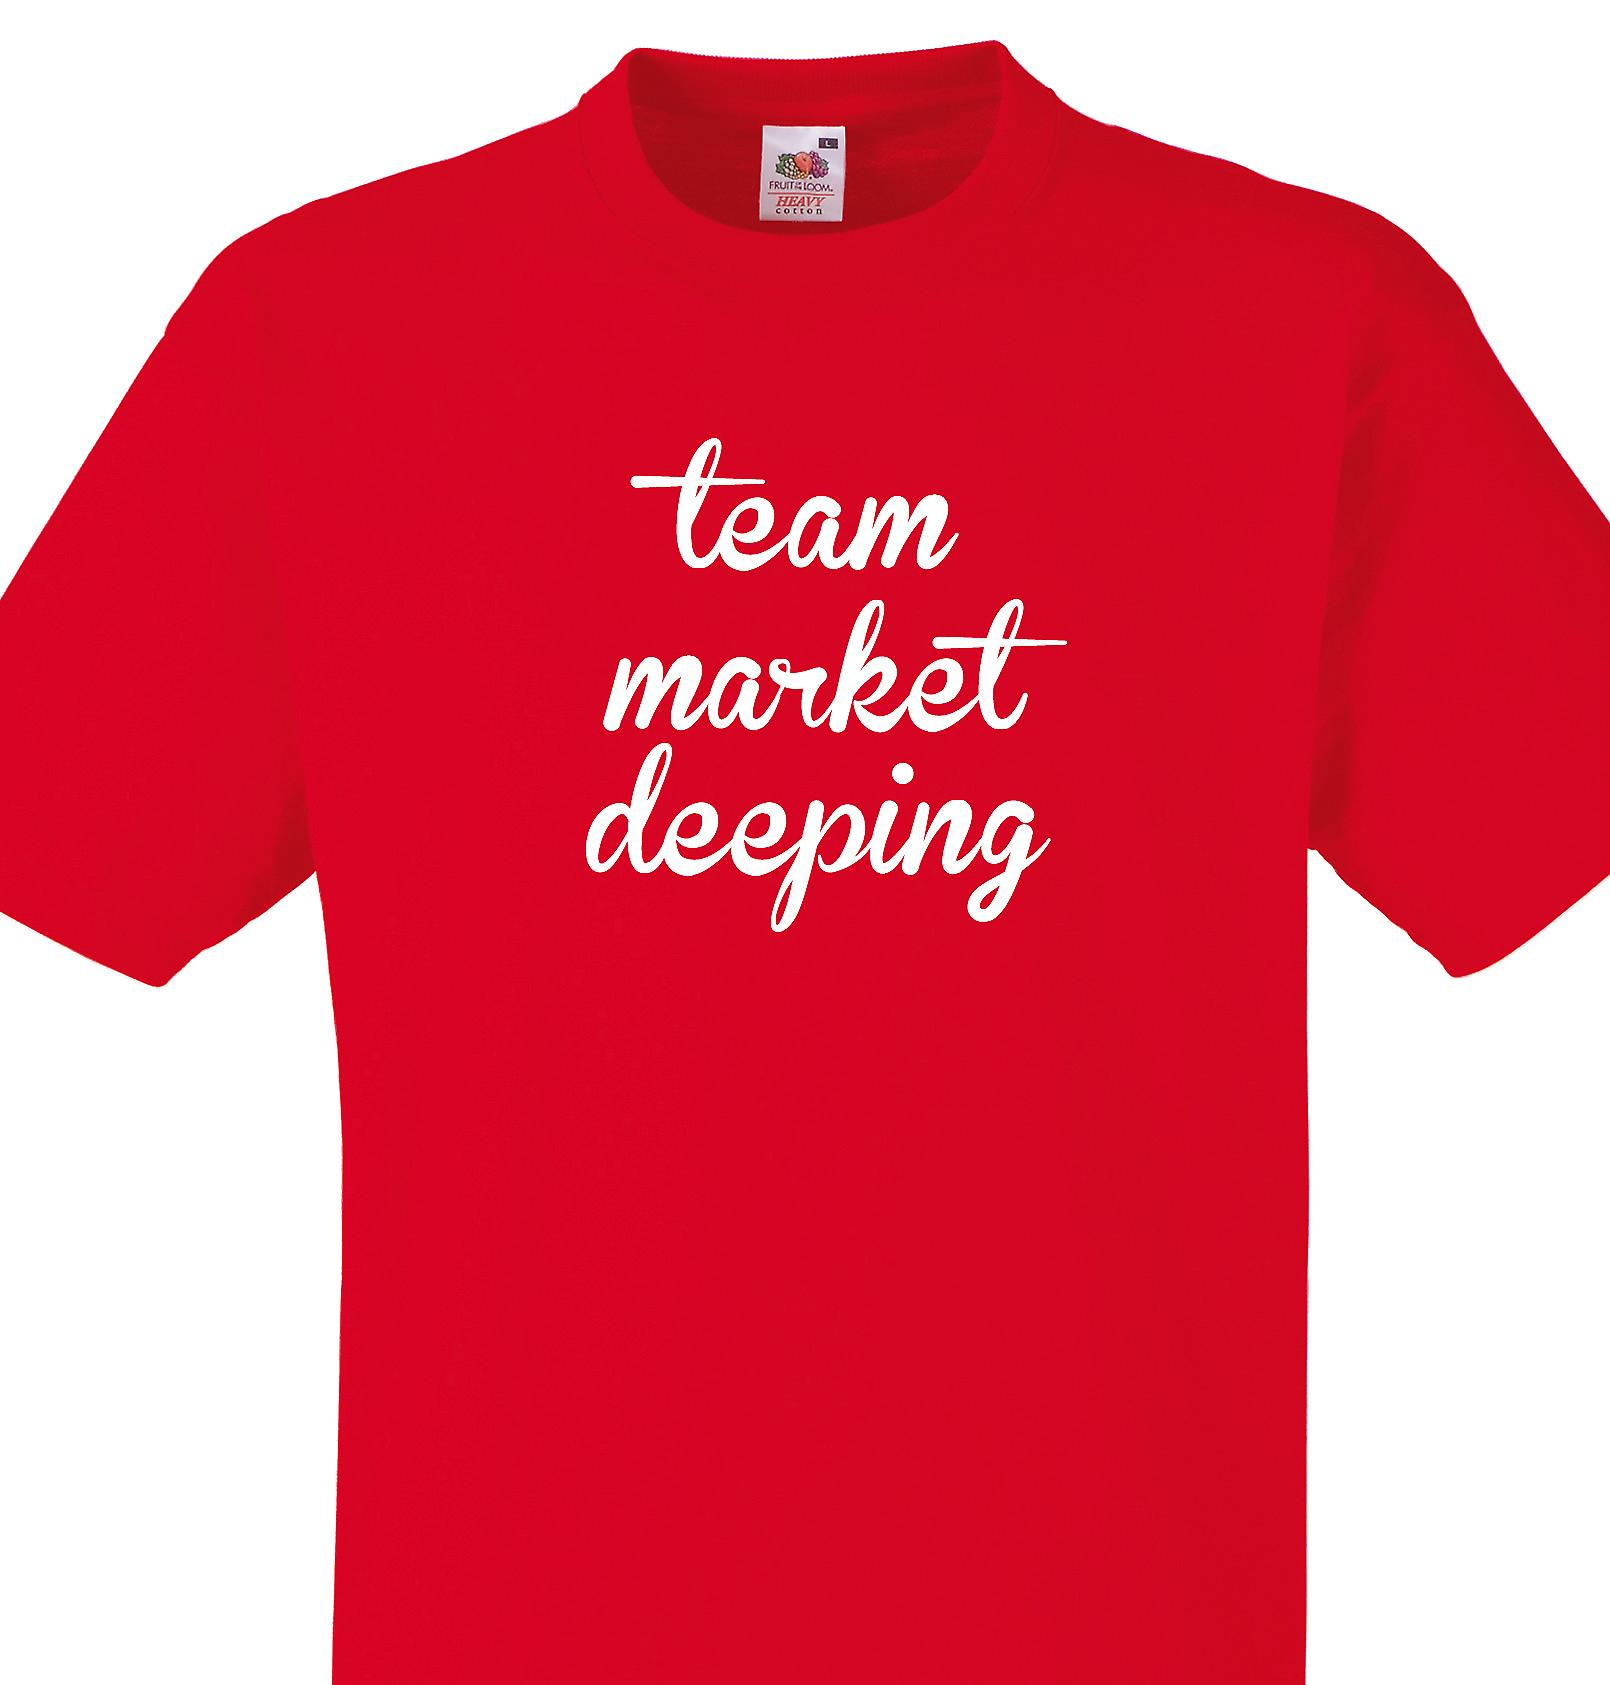 Team Market deeping Red T shirt